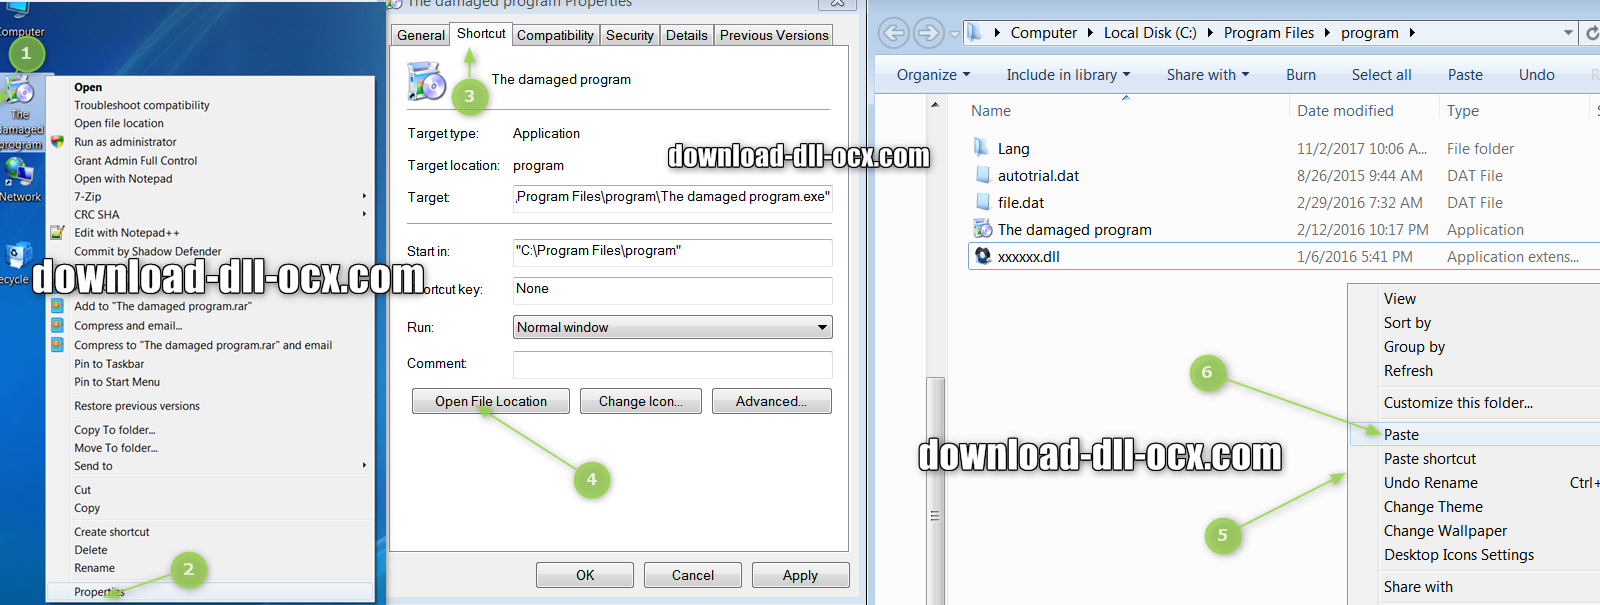 how to install licwmi.dll file? for fix missing